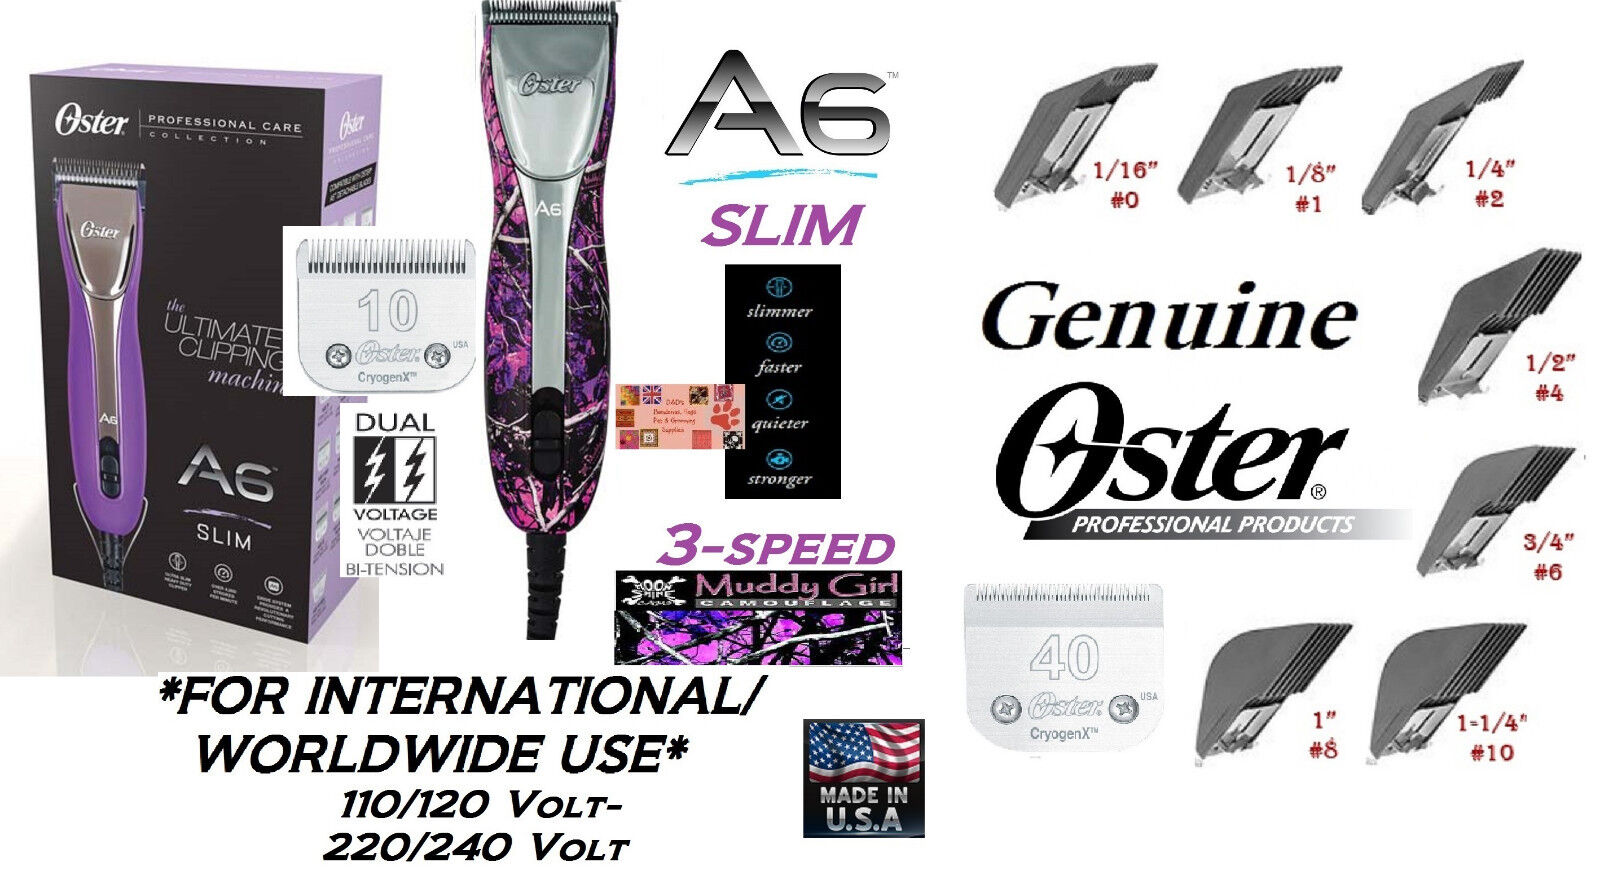 Oster A6 MUDDY GIRL CAMO ULTIMATE Clipper&Cryogen-X 10,40 Blade&7 Guide Comb Set